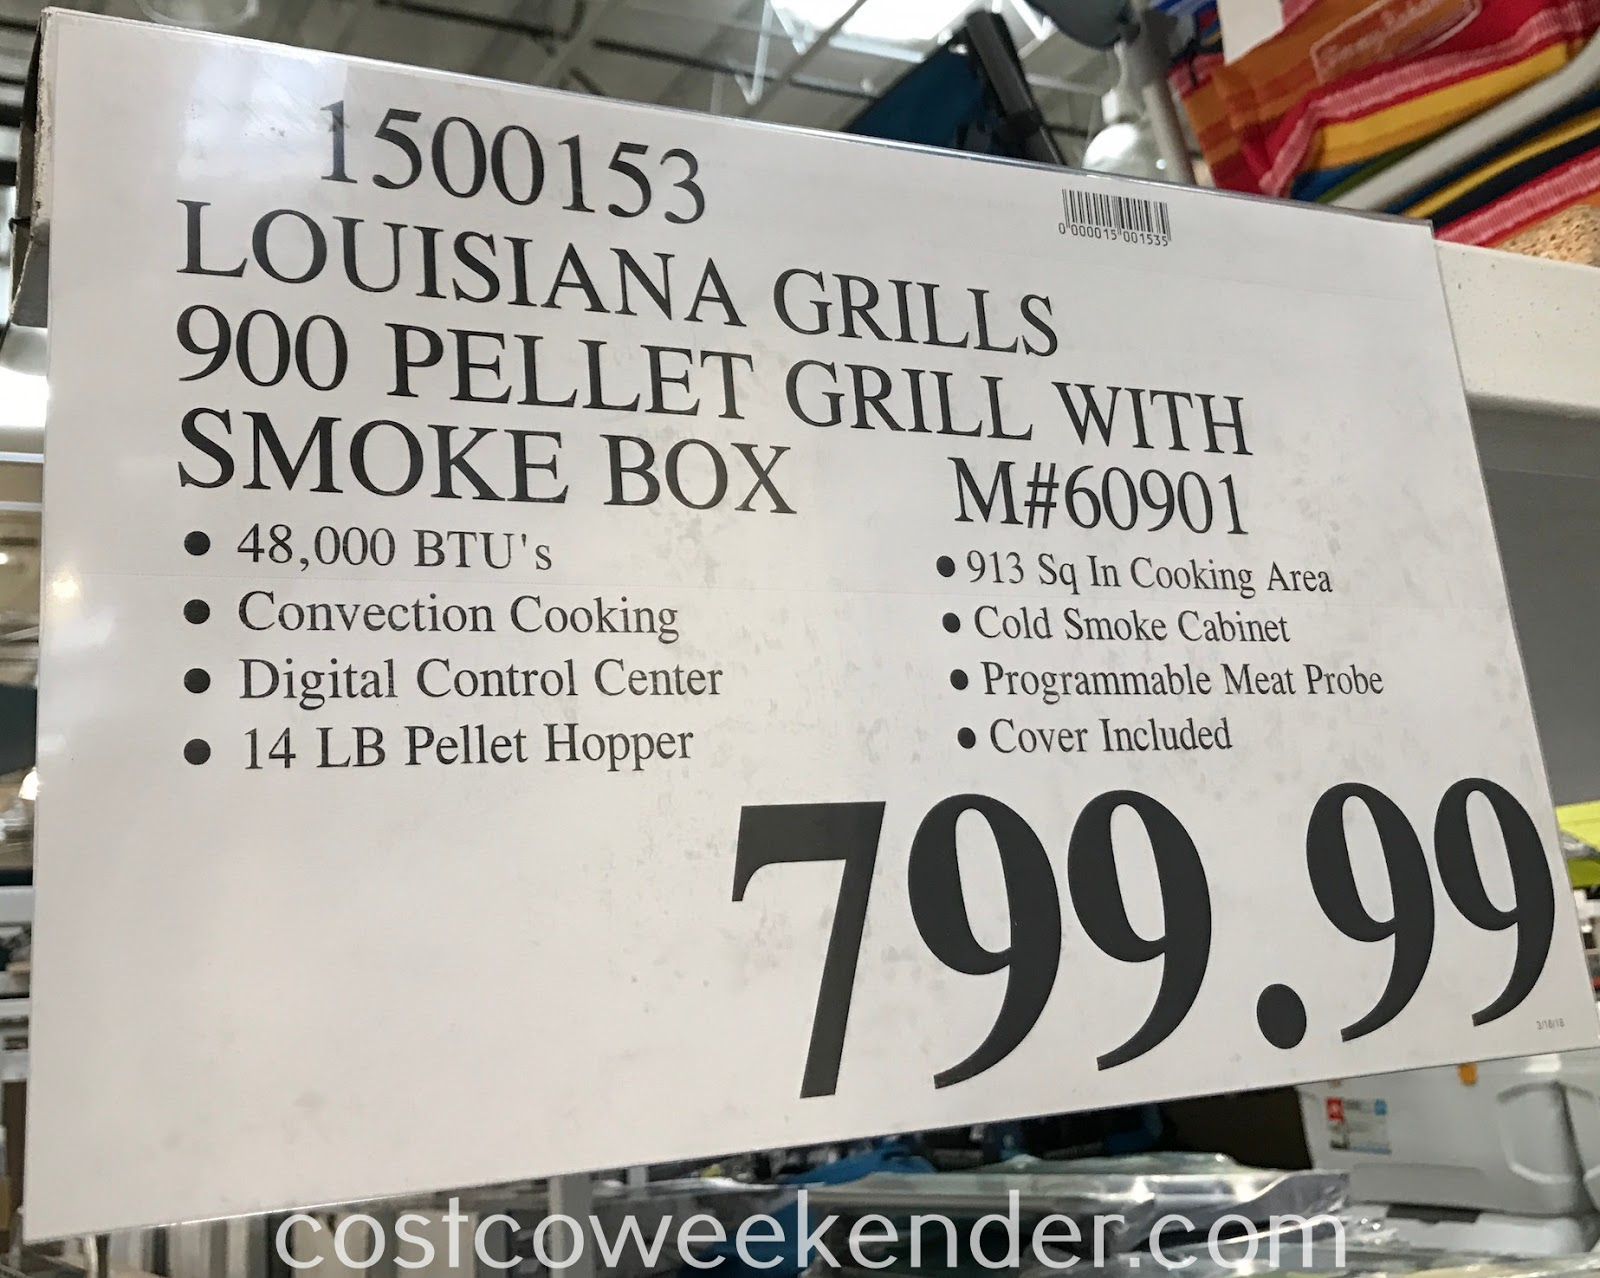 Deal for the Louisiana Grills Wood Pellet Grill and Smoker (model 60901) at Costco